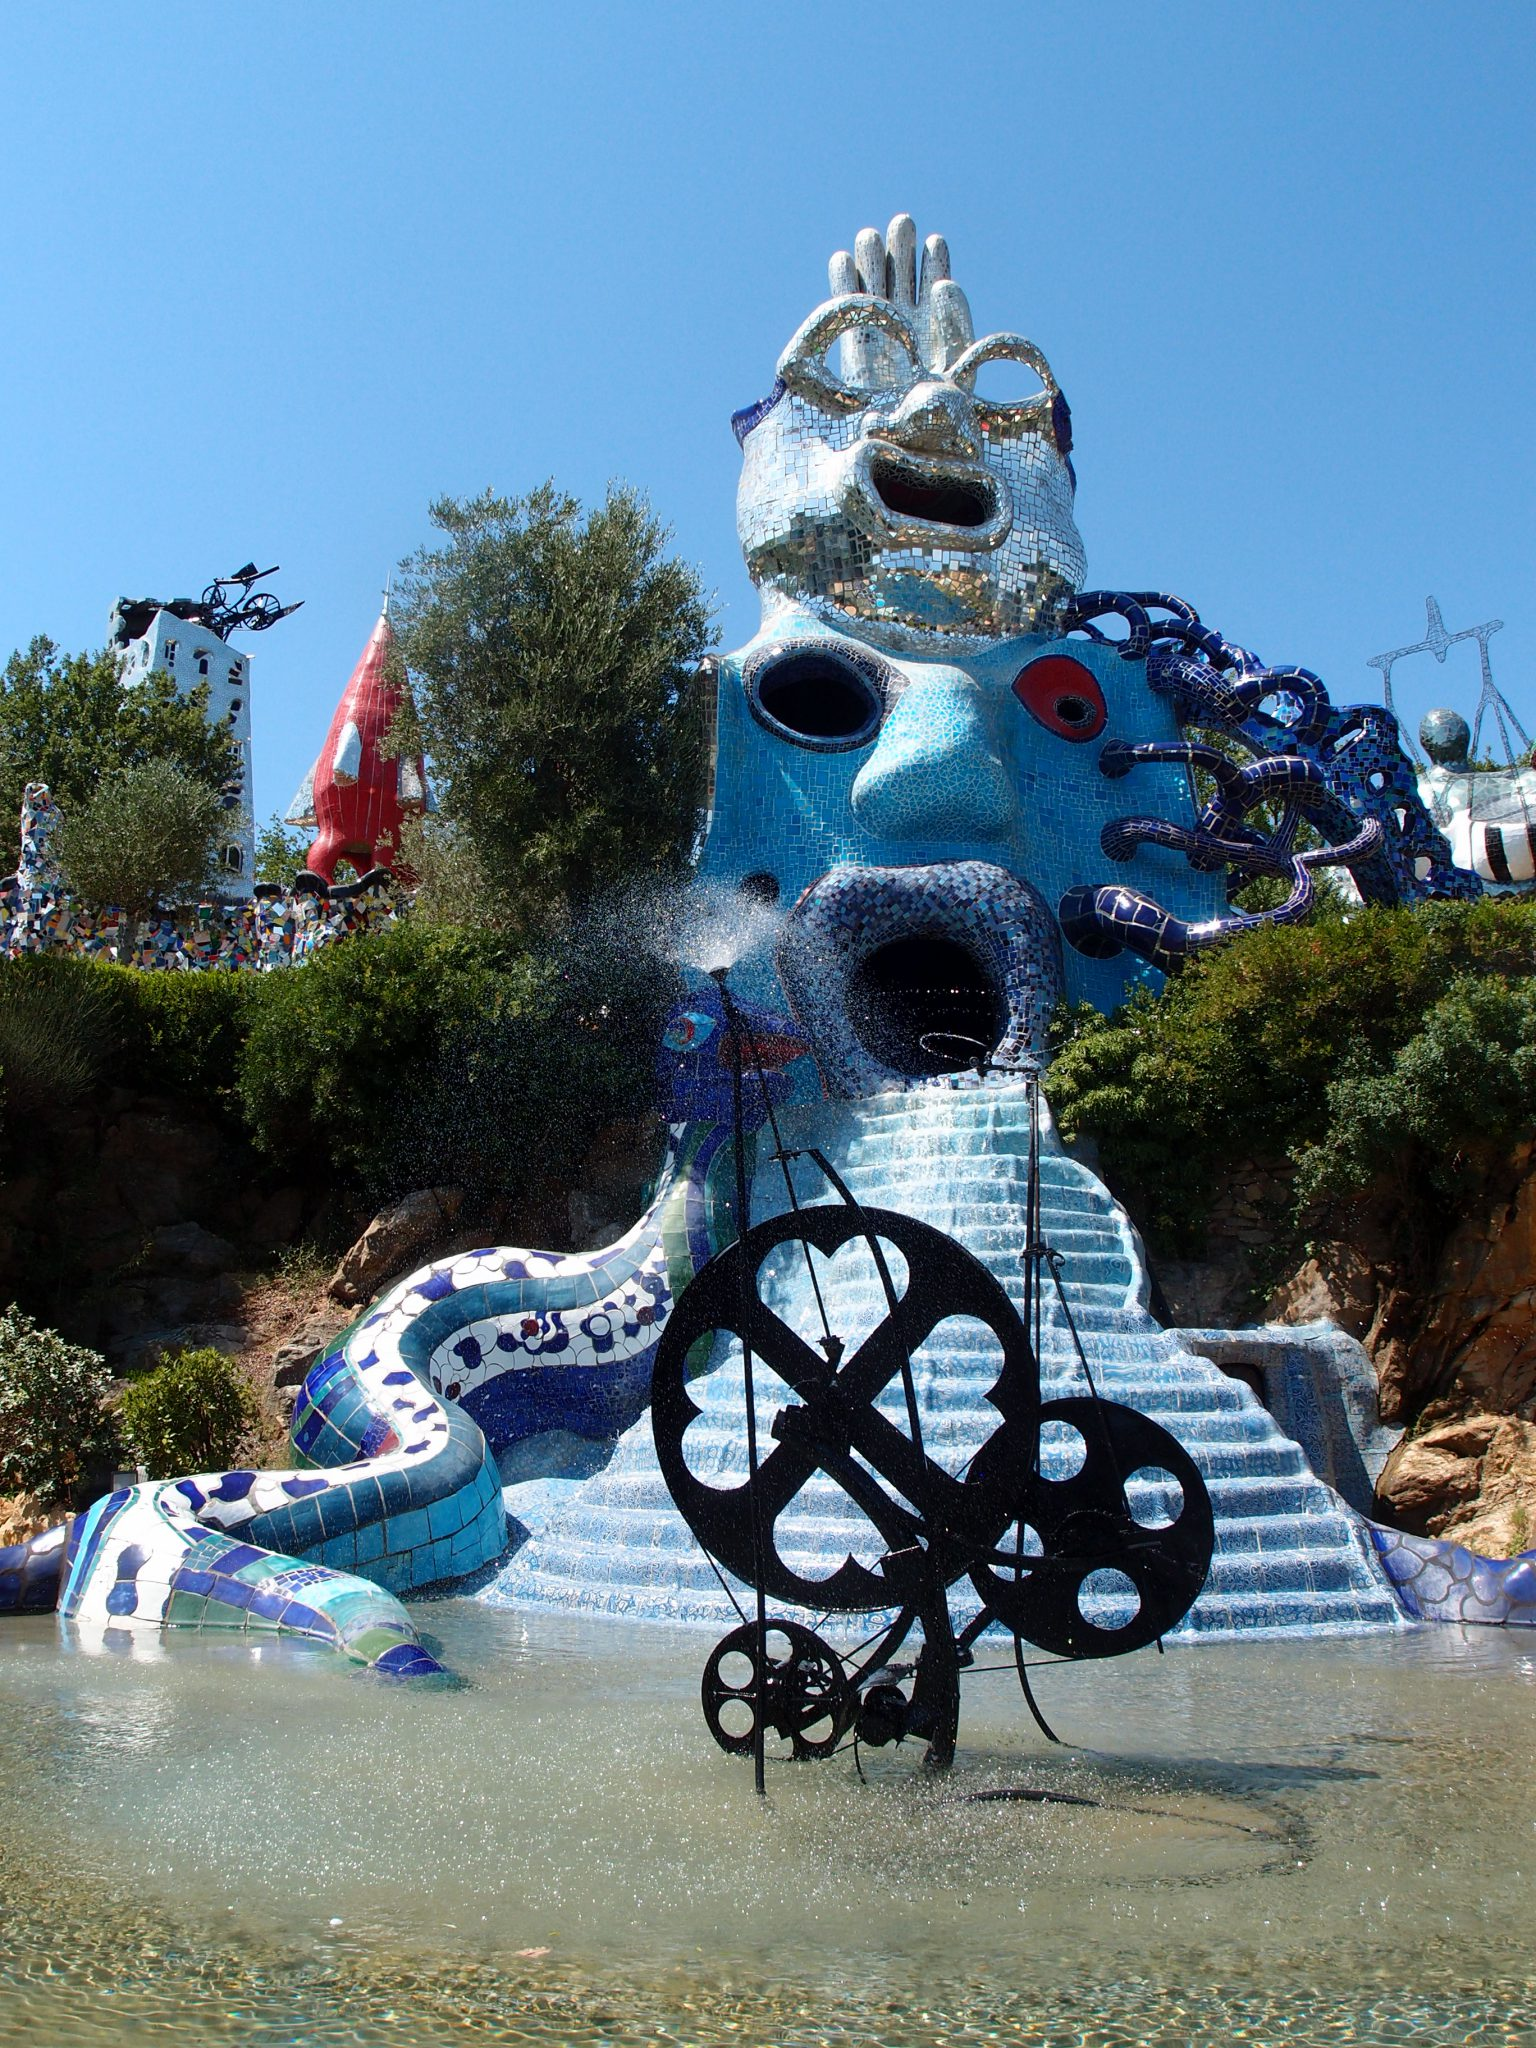 The High Priestess (in Blue), with Magician (in Silver), and the Wheel of Fortune (metal fountain in foreground)